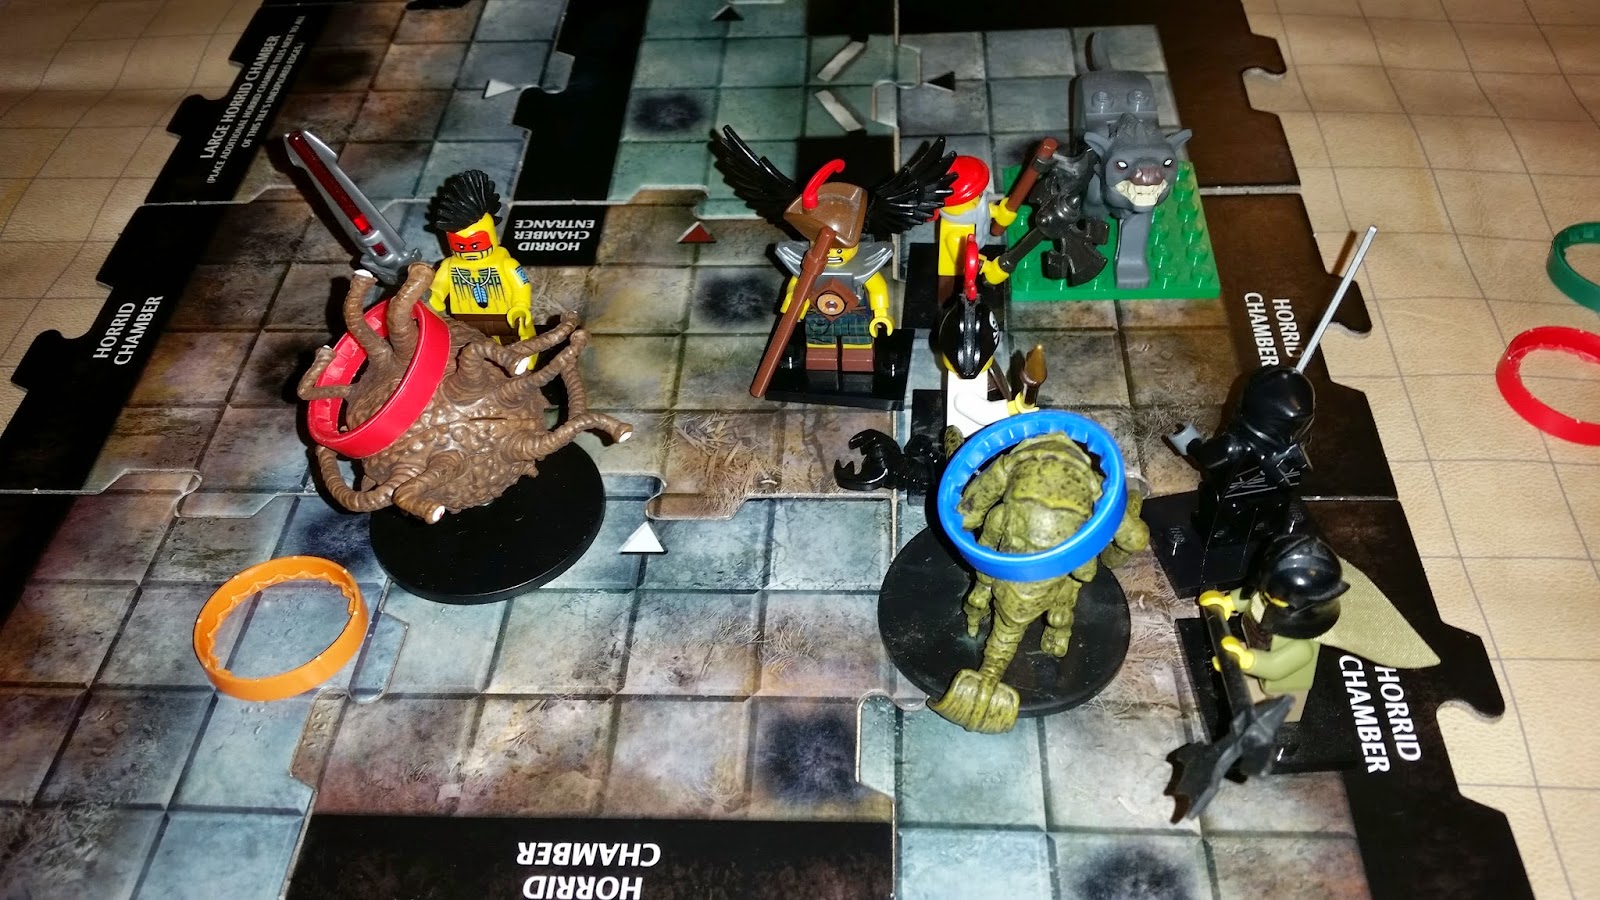 Everyone is LEGO, so of course, the Xoriat aberrations are standard minis!